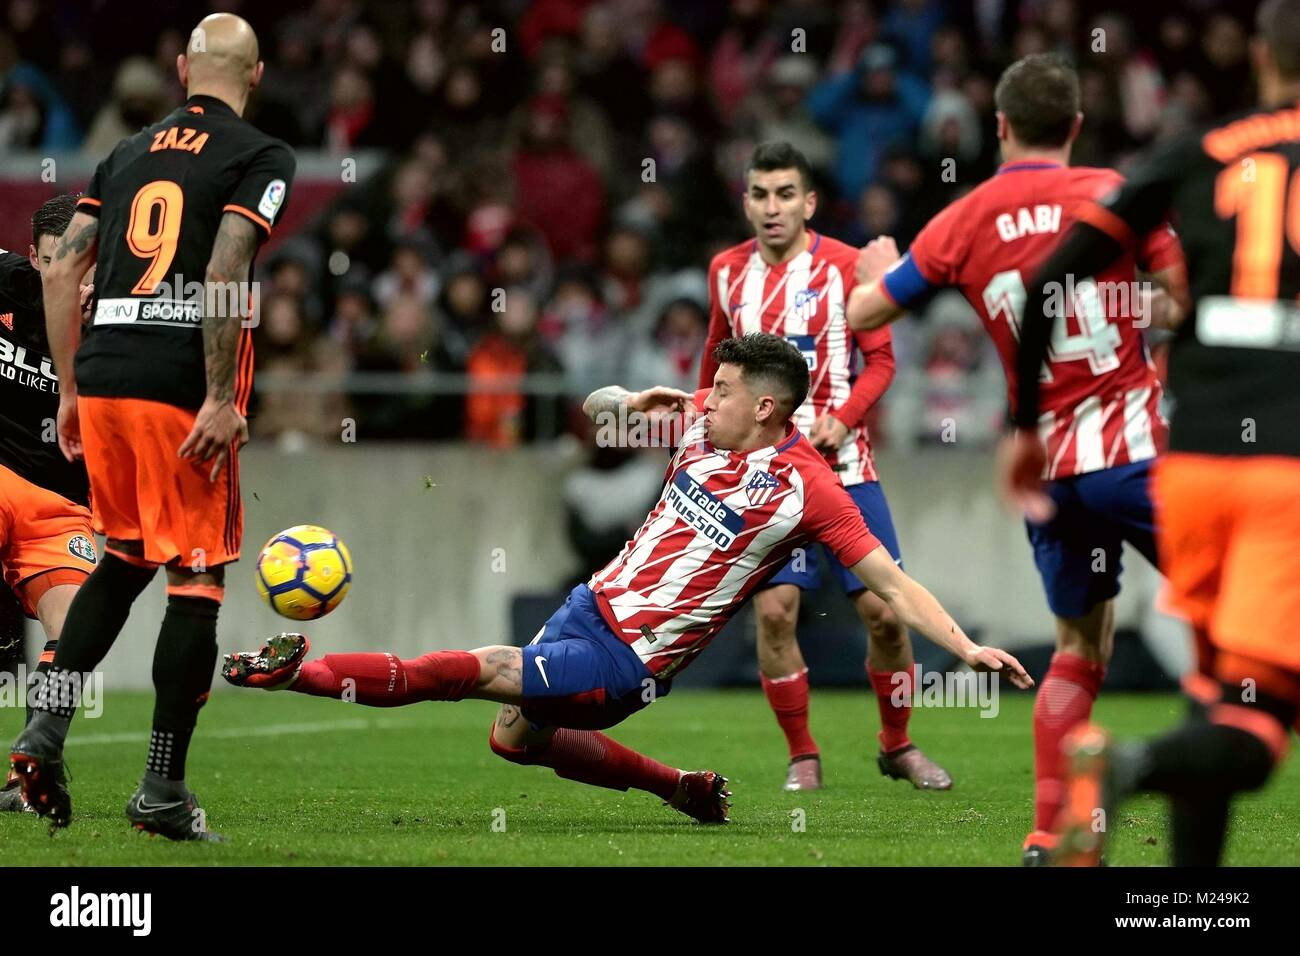 Madrid, Spain. 4th Feb, 2018. Atletico Madrid's Angel Correa (C) competes during a Spanish league match between - Stock Image